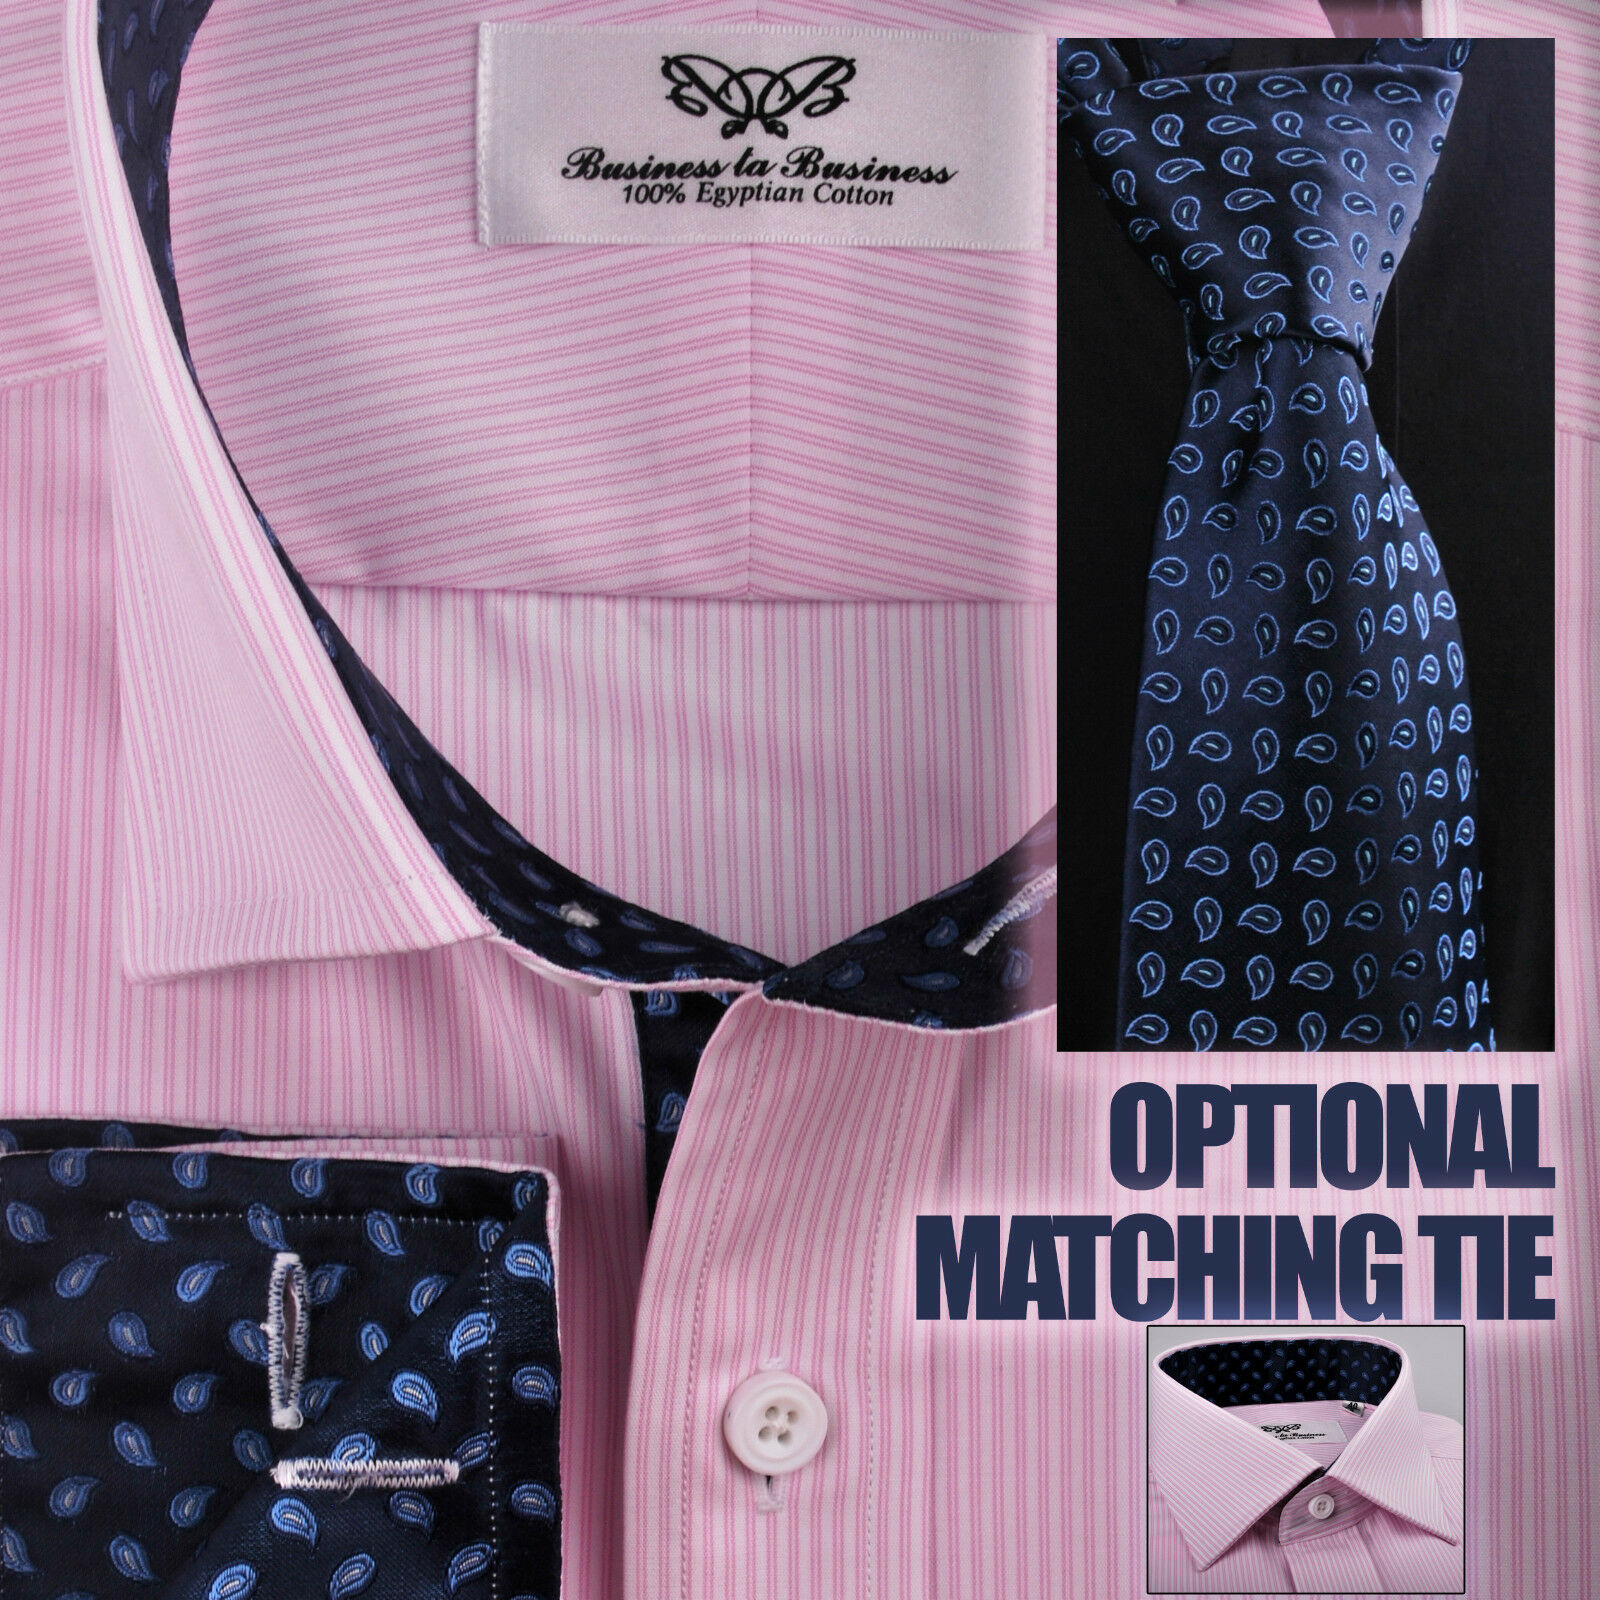 ceceb07b Pink Business Dress Shirt Striped Navy bluee Hot Fire Flame Paisley Floral  Formal nbmnsq20134-Formal Shirts